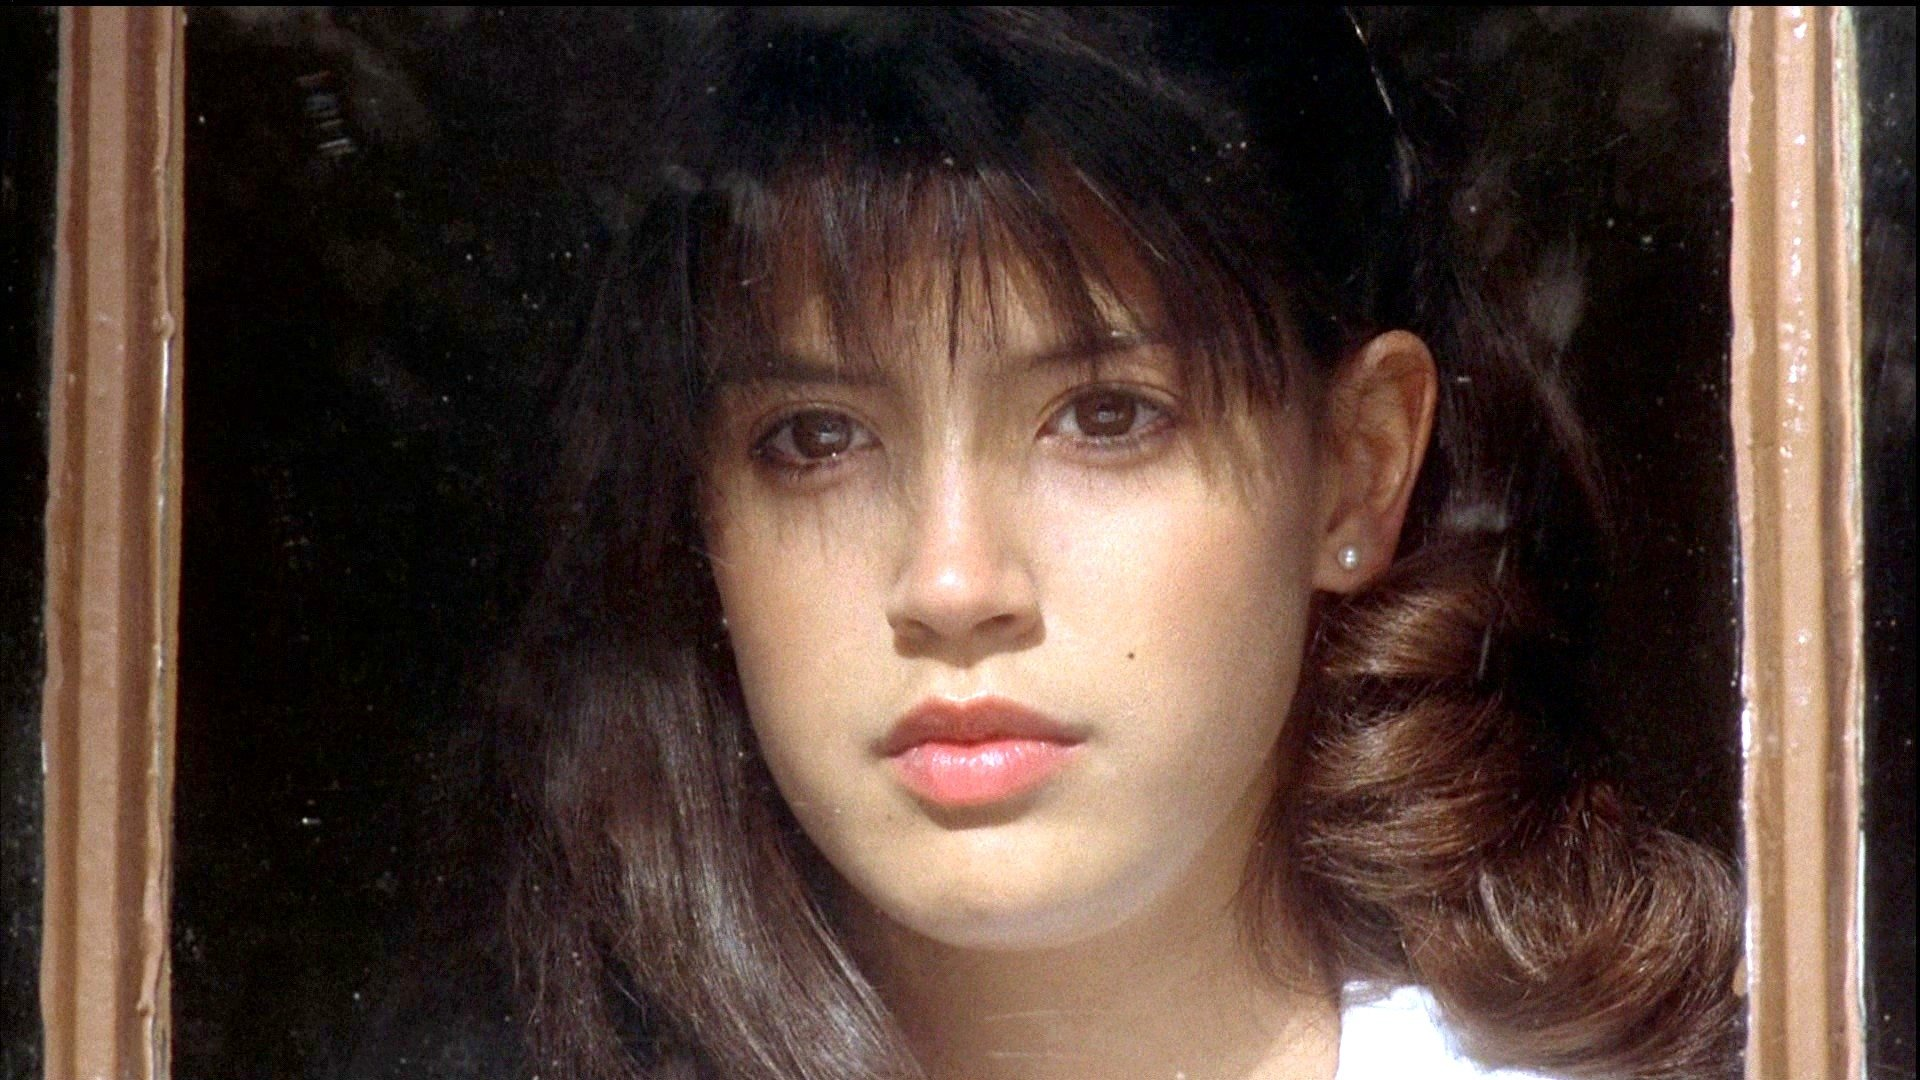 1920x1080 - Phoebe Cates Wallpapers 17